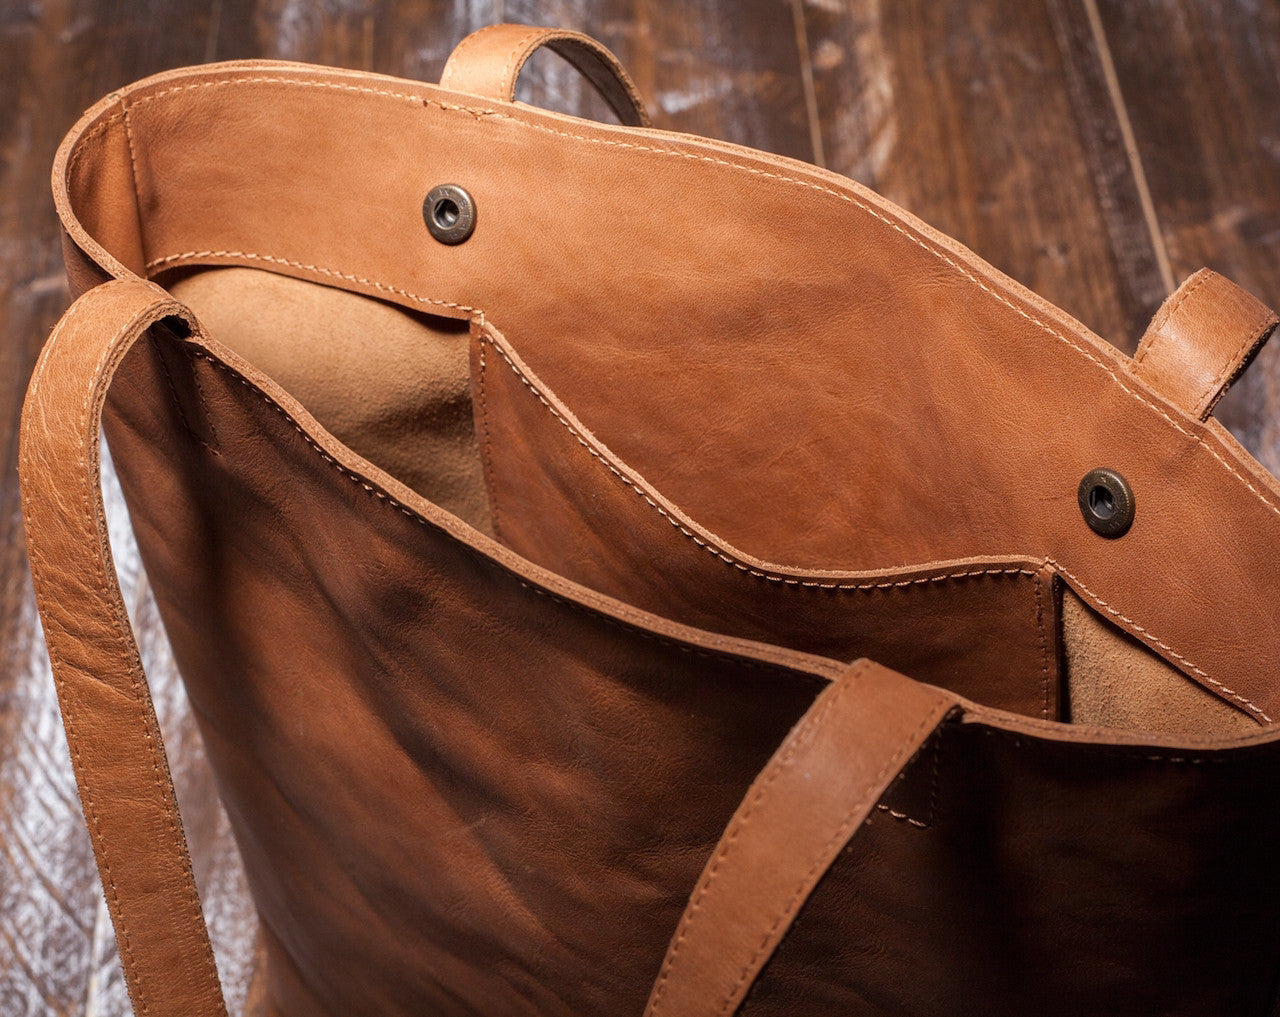 Women's Brown Leather Tote Bag by Tram 21 on Jetset Times SHOP